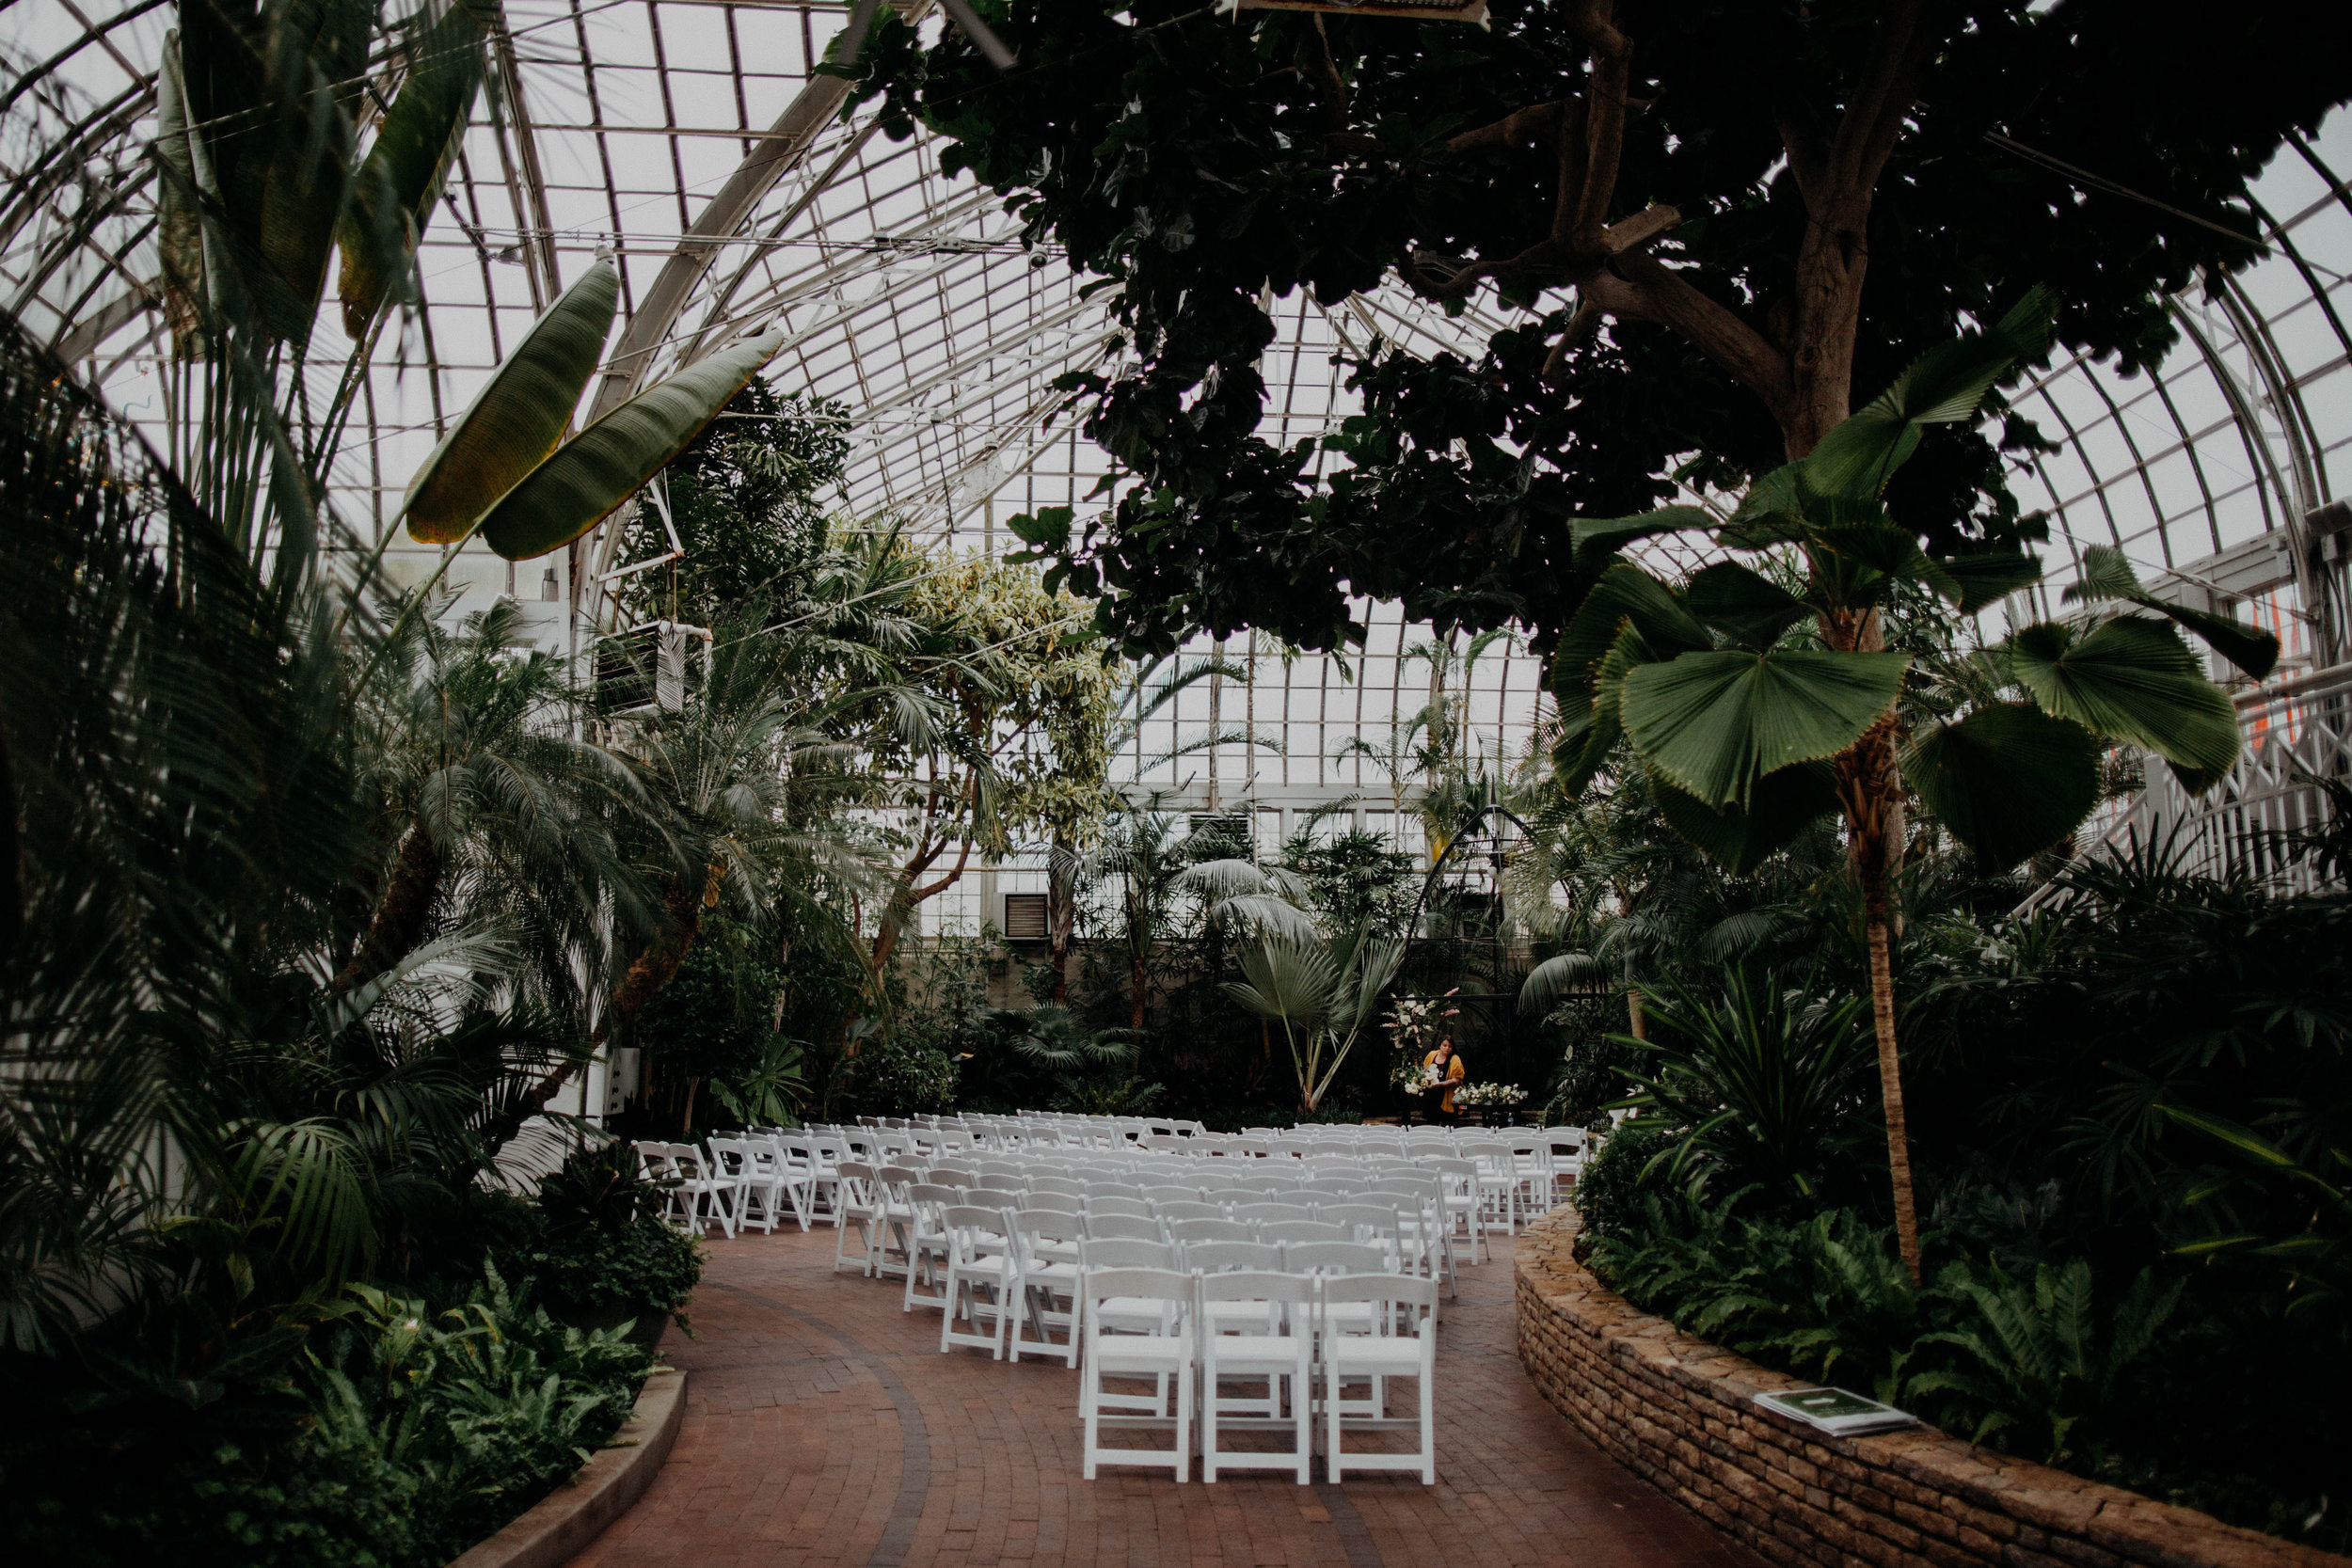 franklin park conservatory wedding columbus ohio wedding photographer grace e jones photography4.jpg